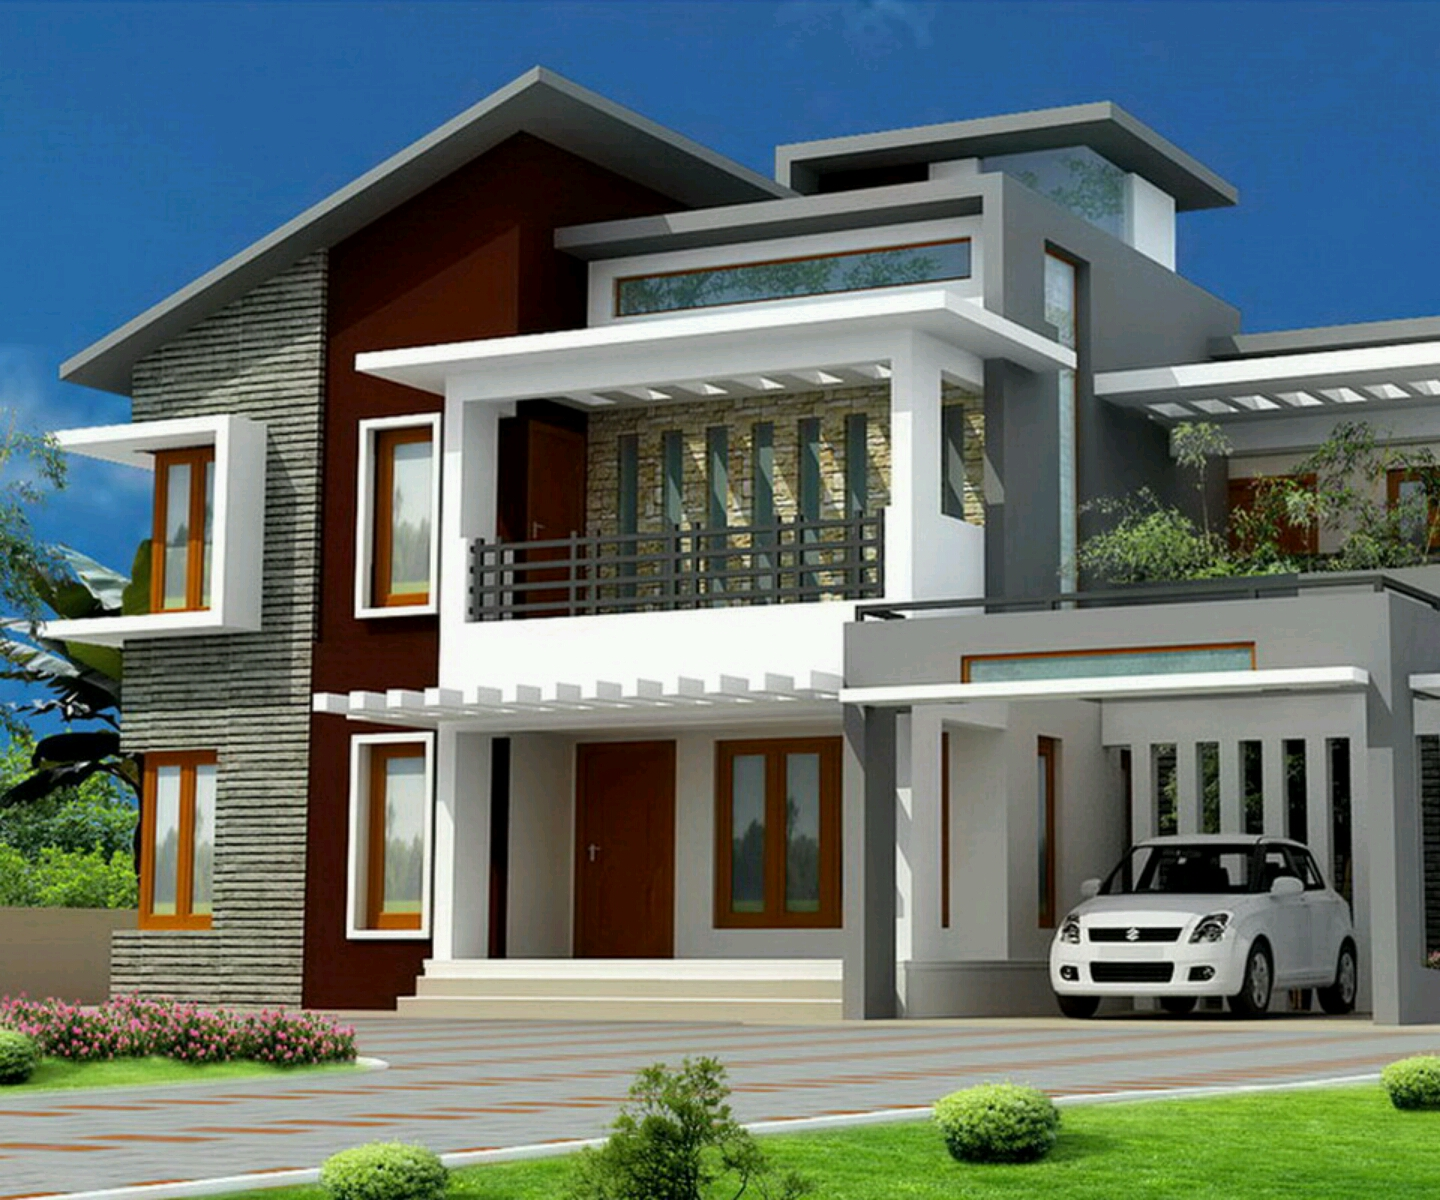 Bungalow Design Ideas My Home Plan Modern Bungalows Exterior Designs